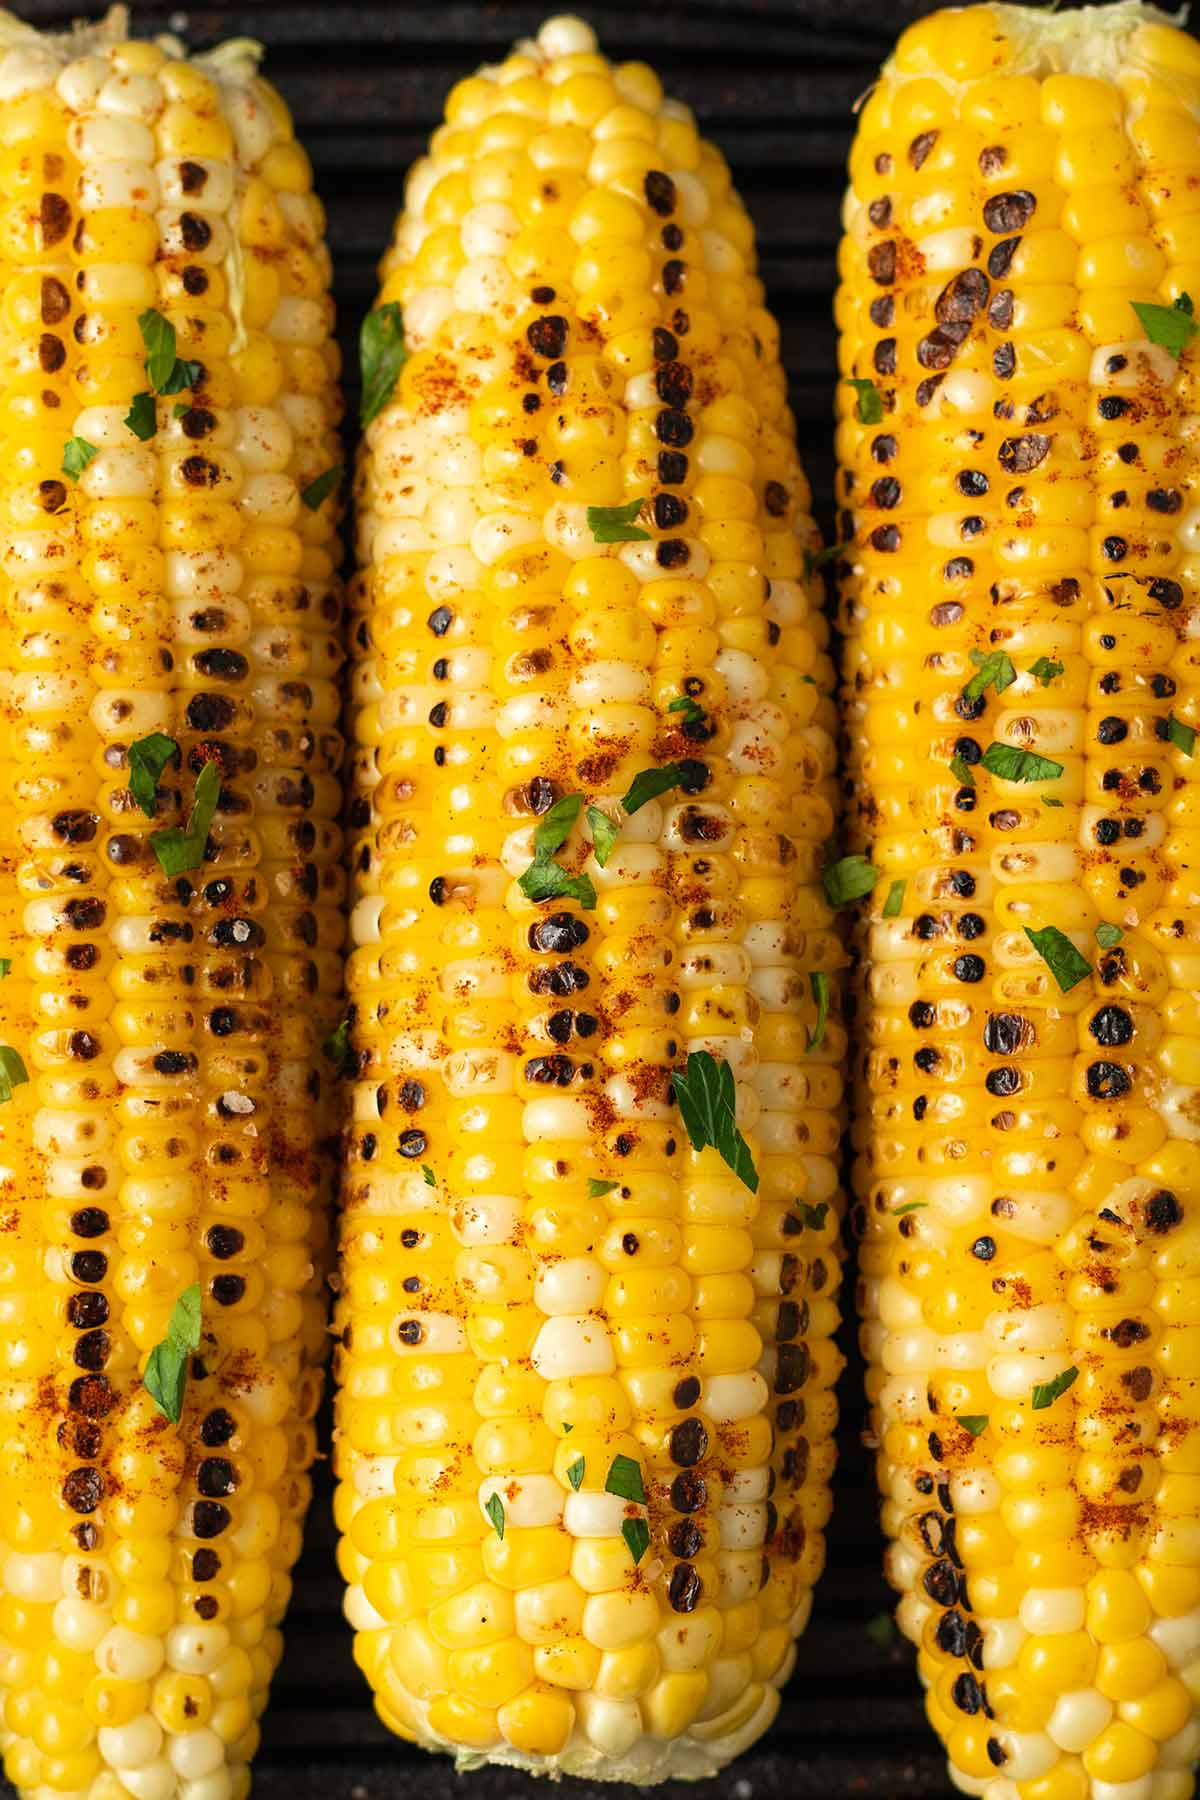 3 ears of grilled corn on the cob next to each other, tipped with salt and parsley.